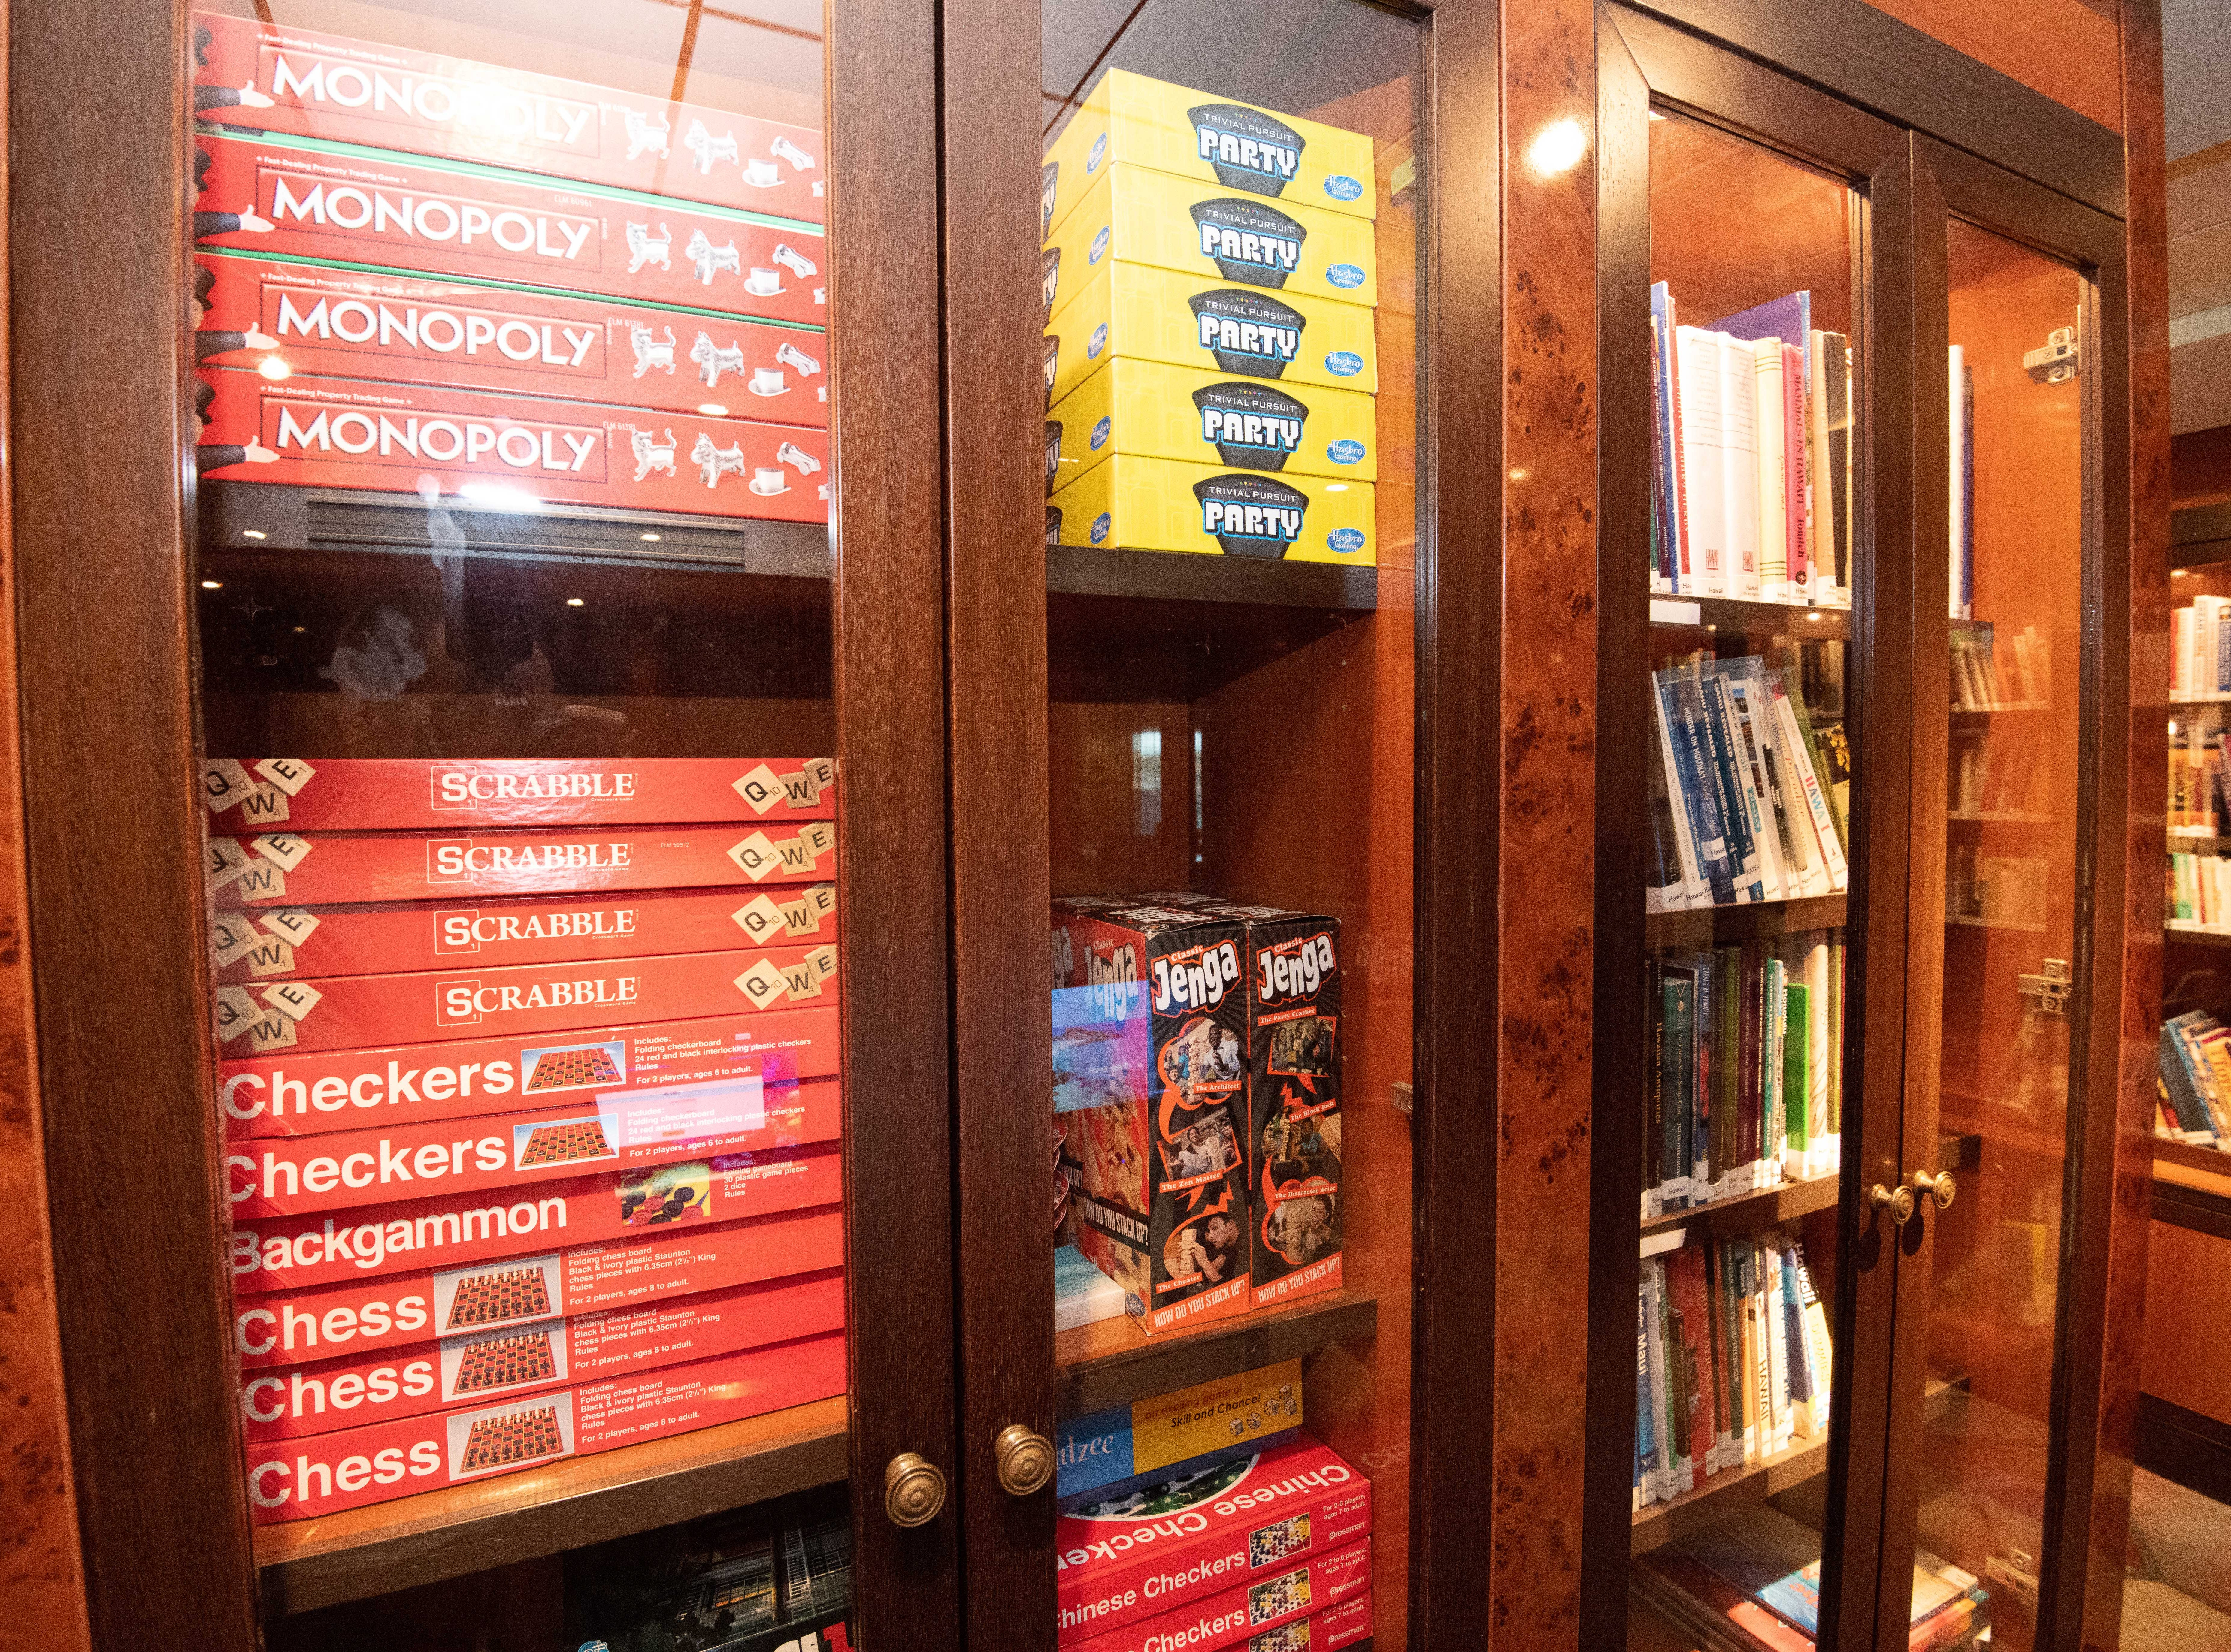 A wide range of board games including Scrabble and Monopoly are available for passenger use in the SS America Library.